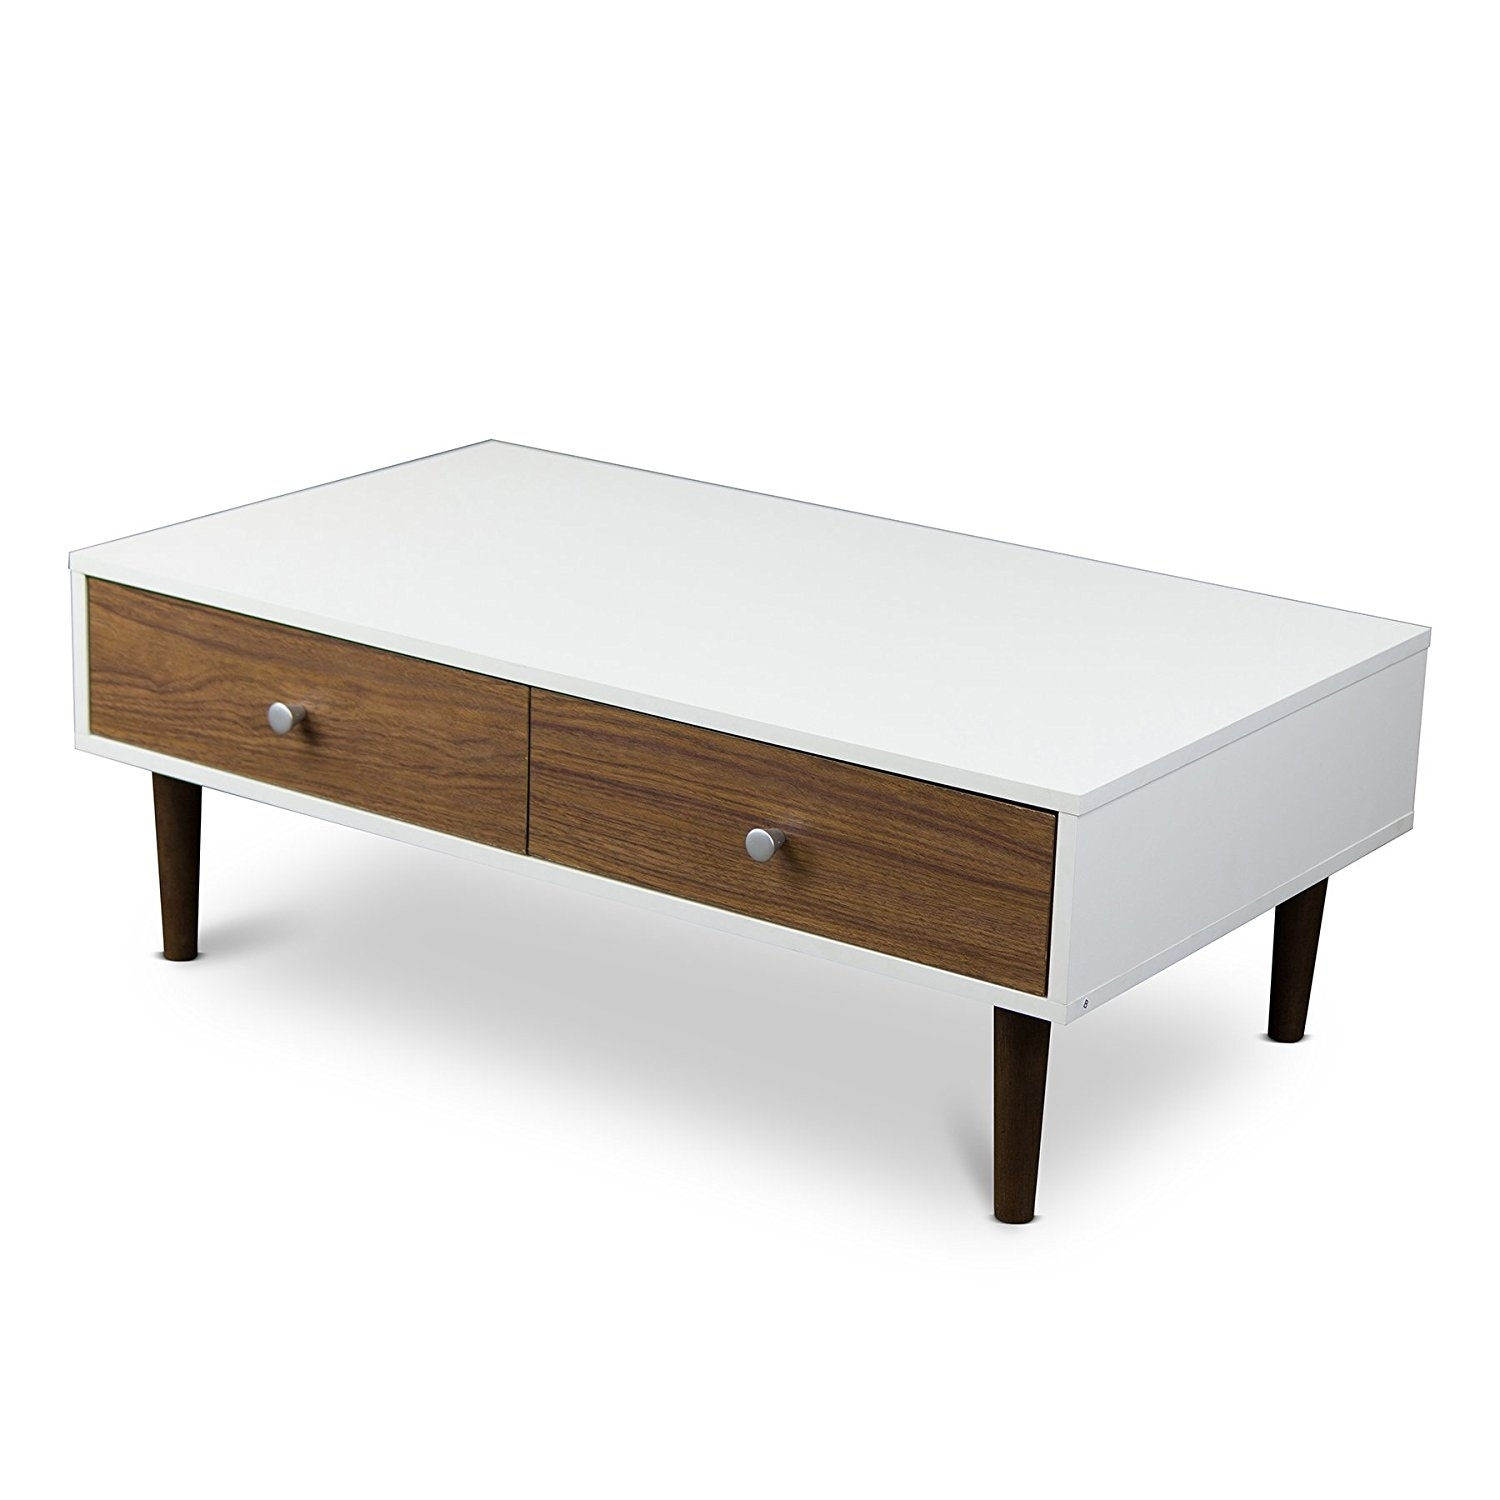 Latest Design White High Gloss Mdf Storage Coffee Table For Sale in Stack Hi-Gloss Wood Coffee Tables (Image 18 of 30)